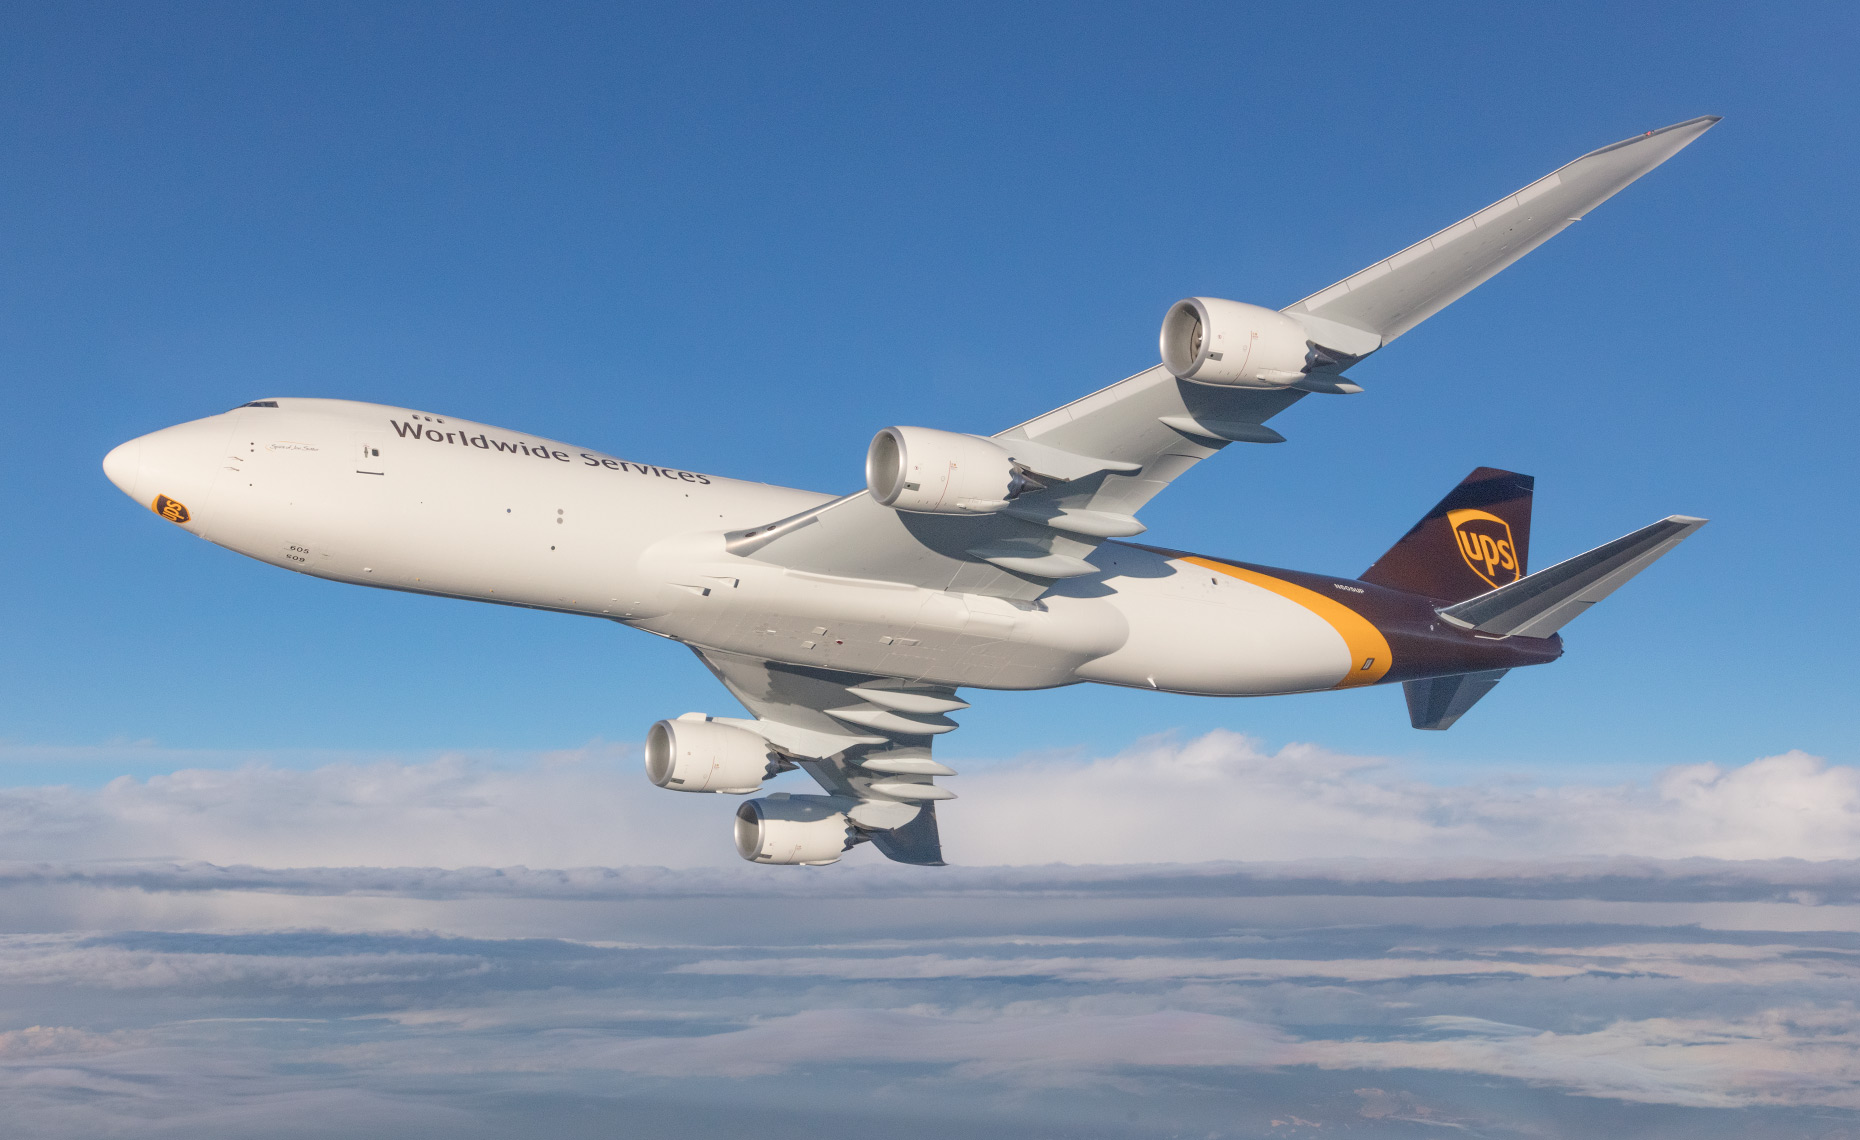 UPS Boeing 747-8F | Chad Slattery Aviation Photography